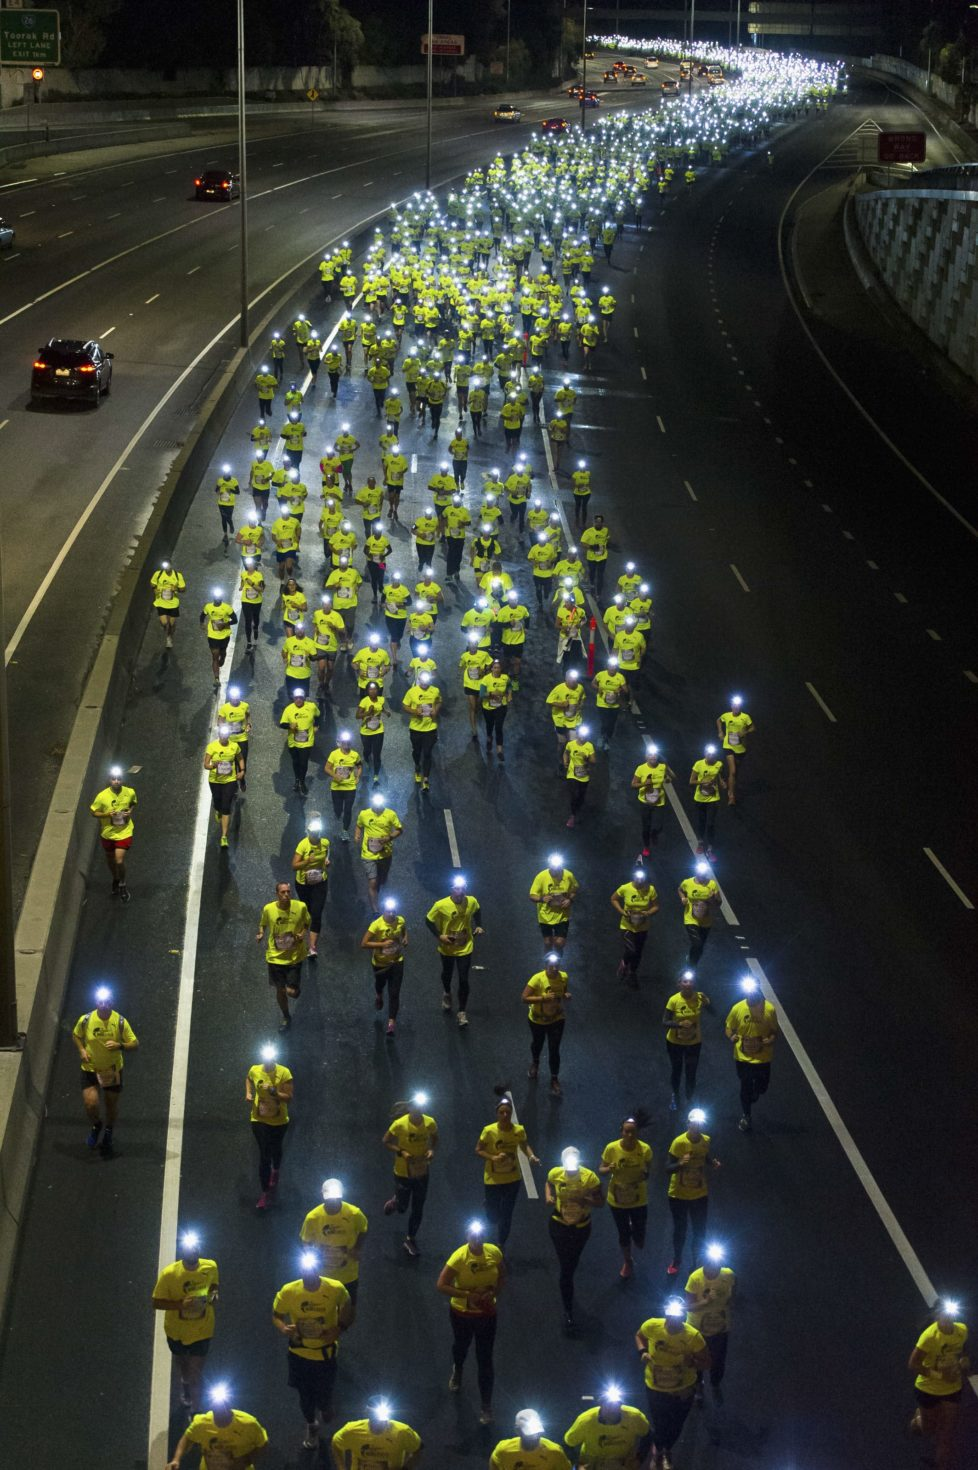 MELBOURNE, AUSTRALIA - MAY 8: Participants compete during the Wings for Life World Run on May 8, 2016 in Melbourne, Australia. A record 130,732 registered for the race worldwide. (Photo by Mark Dadswell/Getty Images for Red Bull) *** BESTPIX ***